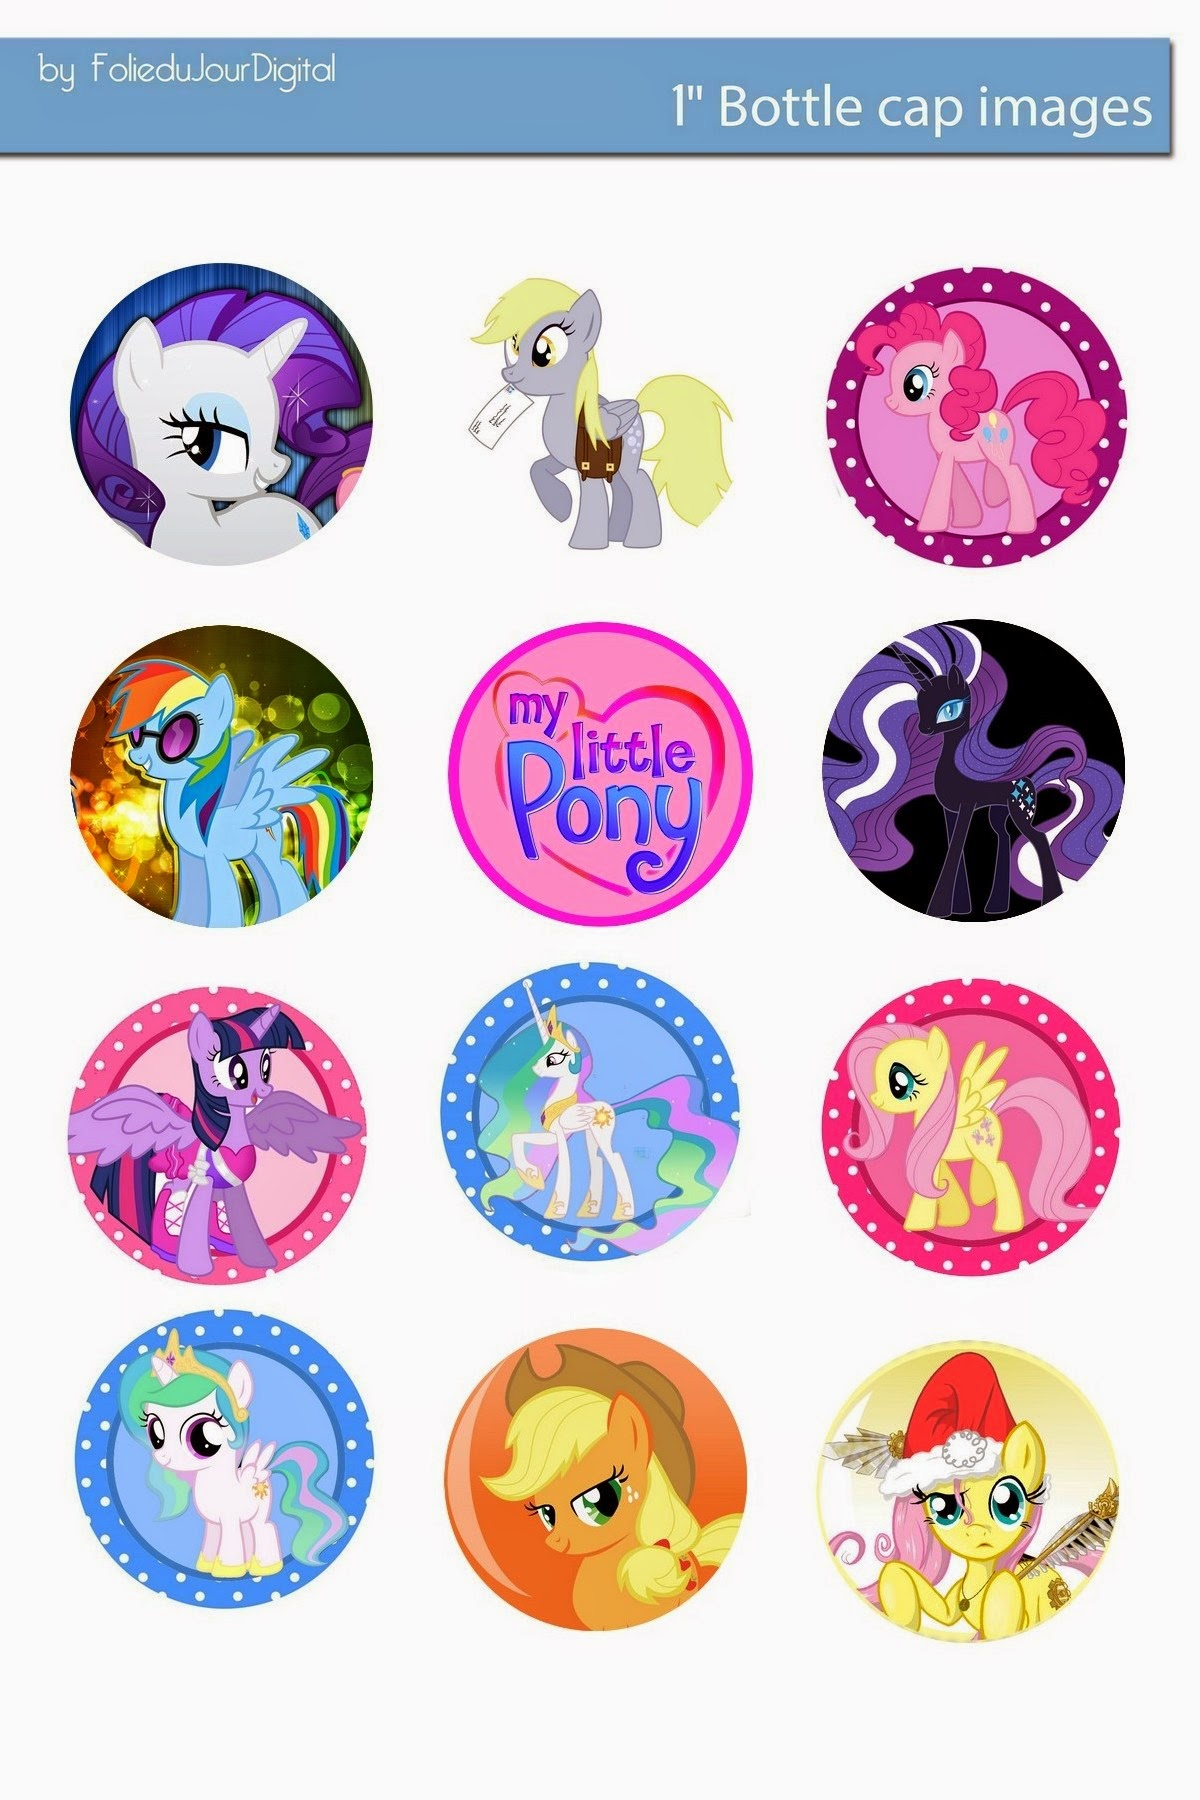 free bottle cap images my little pony free digital bottle